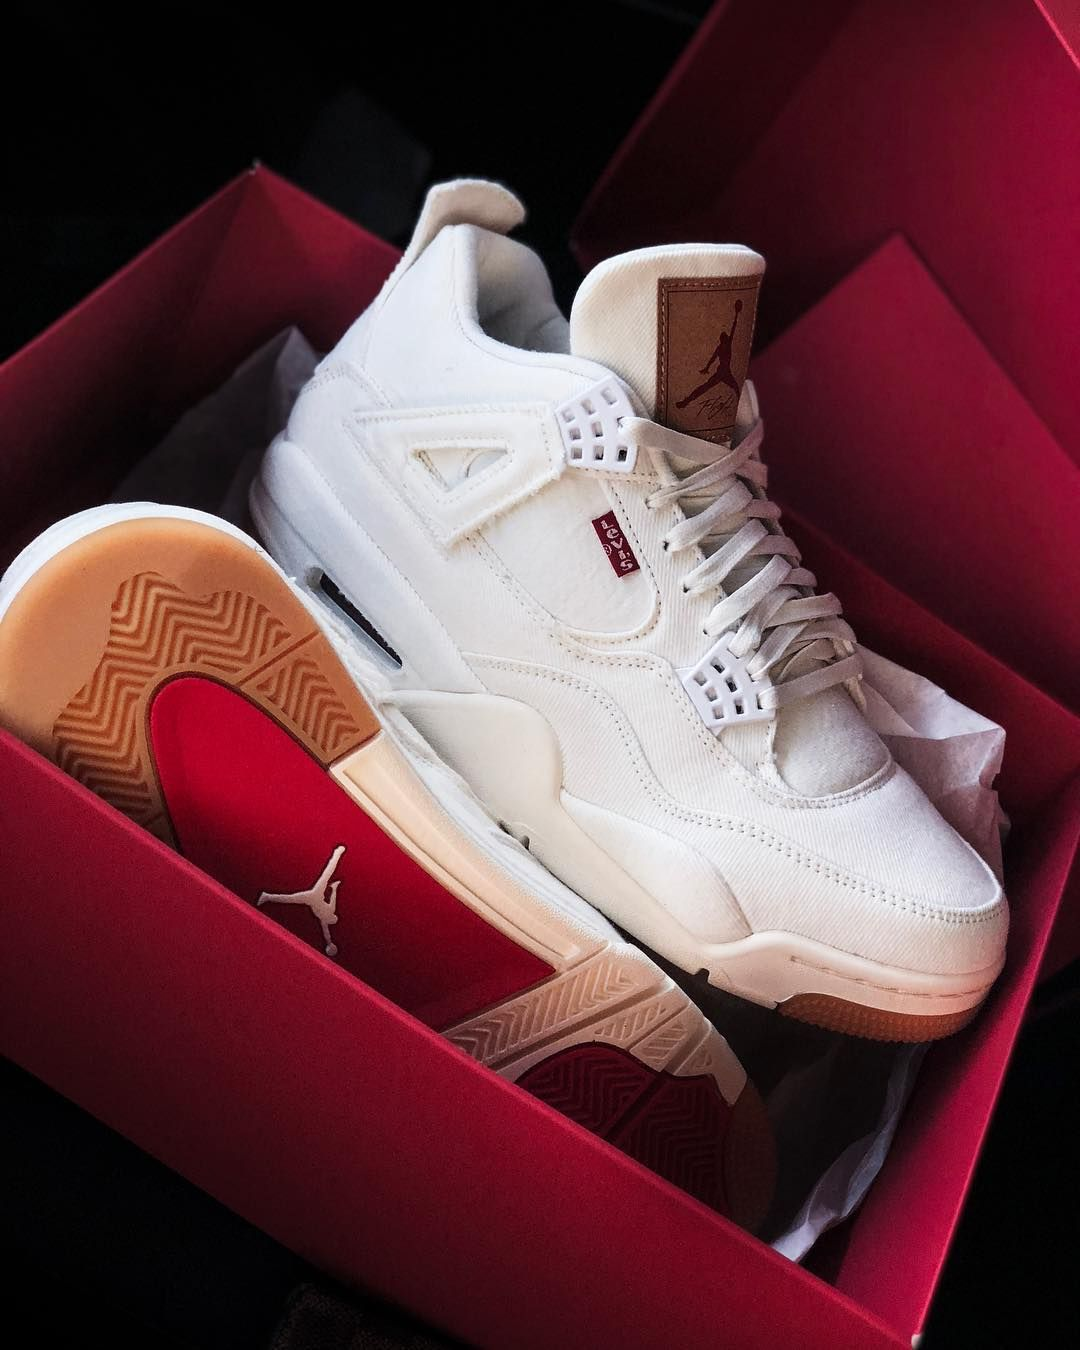 Levi s x Air Jordan 4 Denim White AO2571-100  0ad3c6791e22